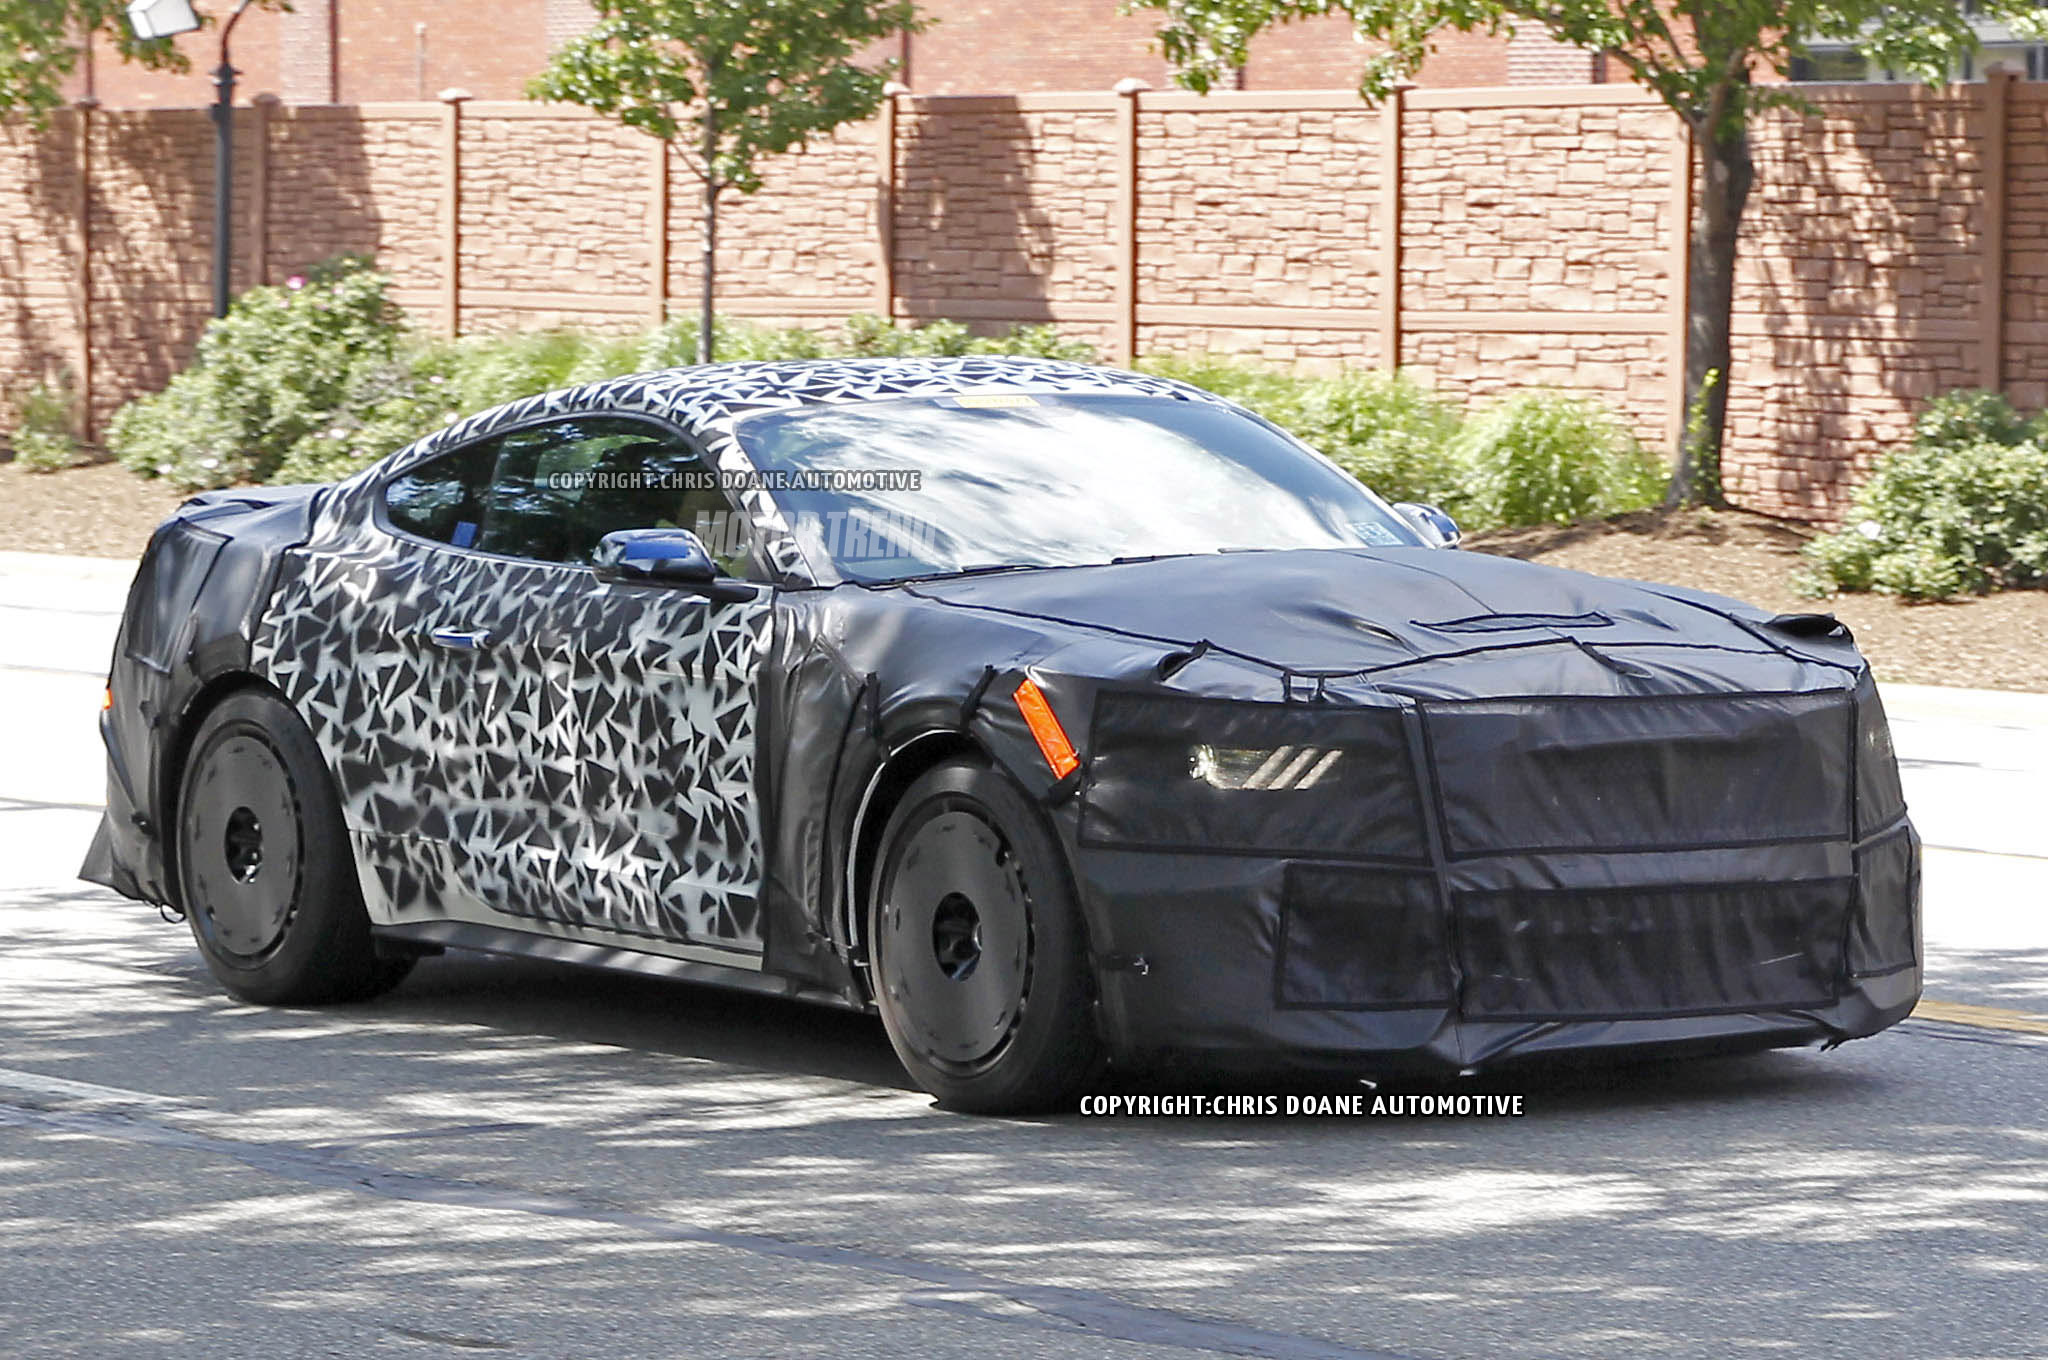 2017 Ford Mustang Shelby GT photo - 4